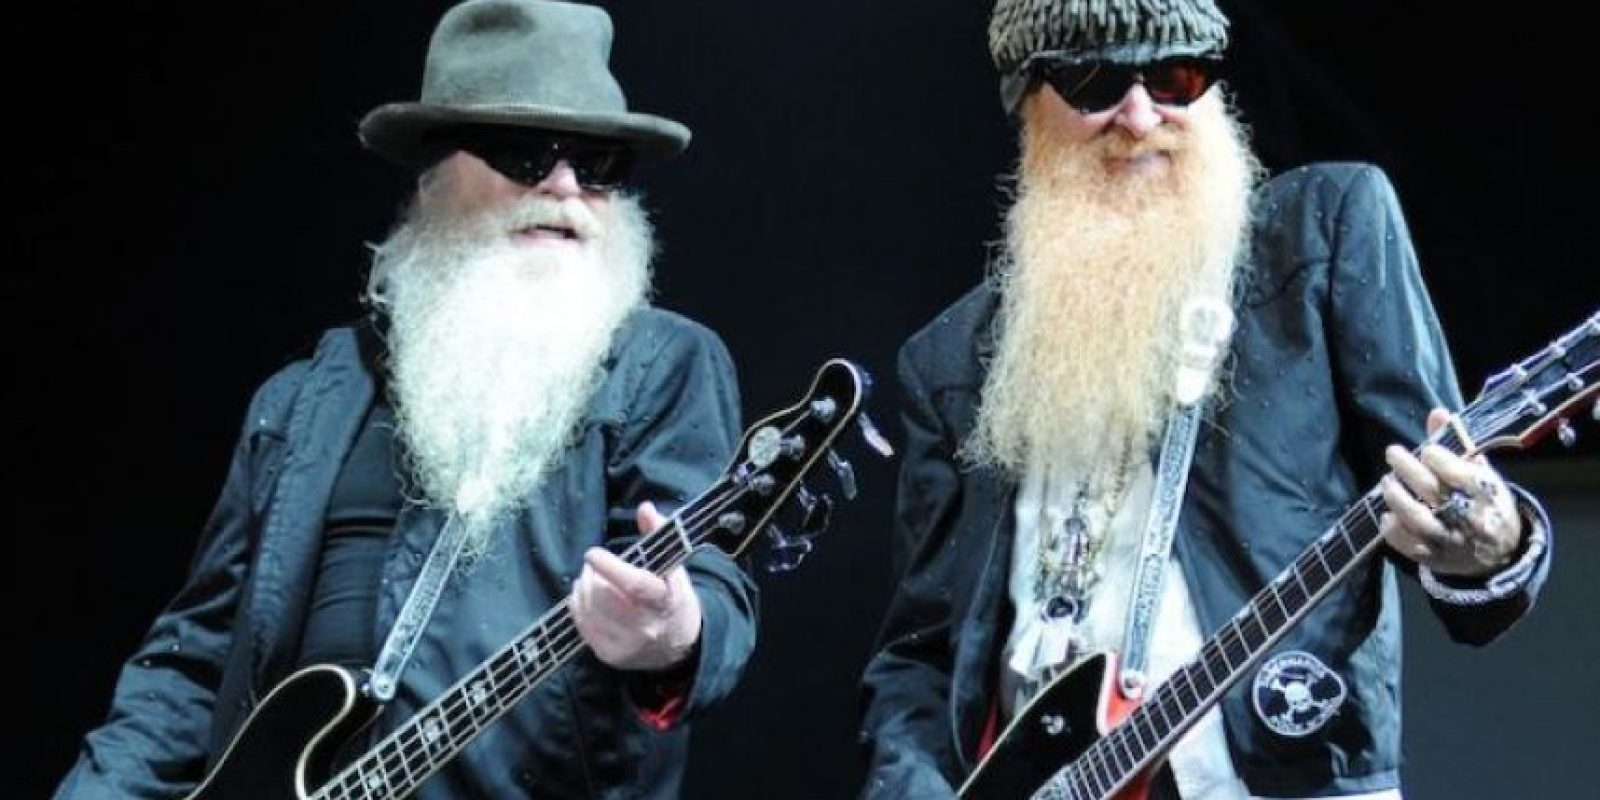 La banda ZZ Top en sus inicios se llamaba The Moving Sidewalks Foto: Getty Images